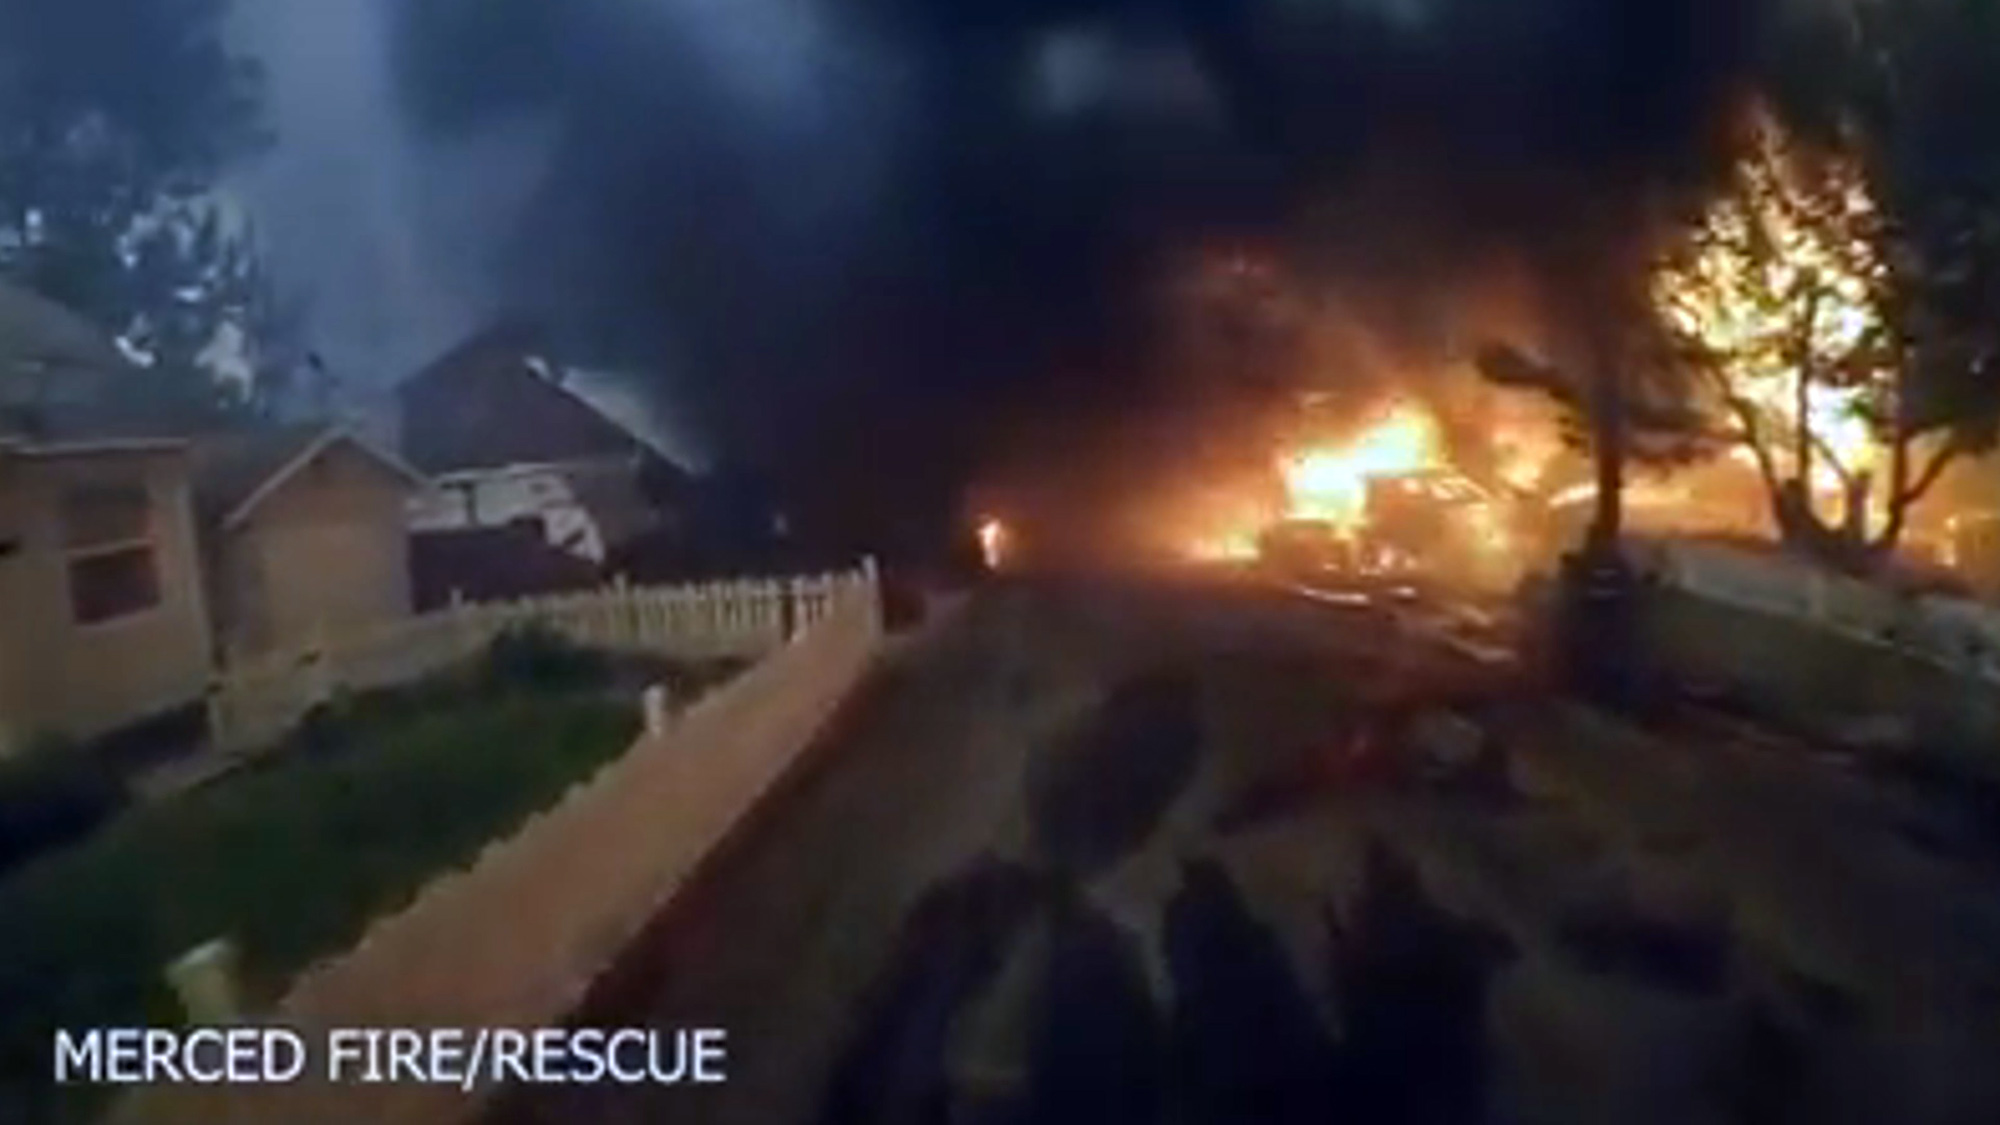 VIDEO: California Firefighters Claim Victory in Stopping Fast-Growing Wildfire